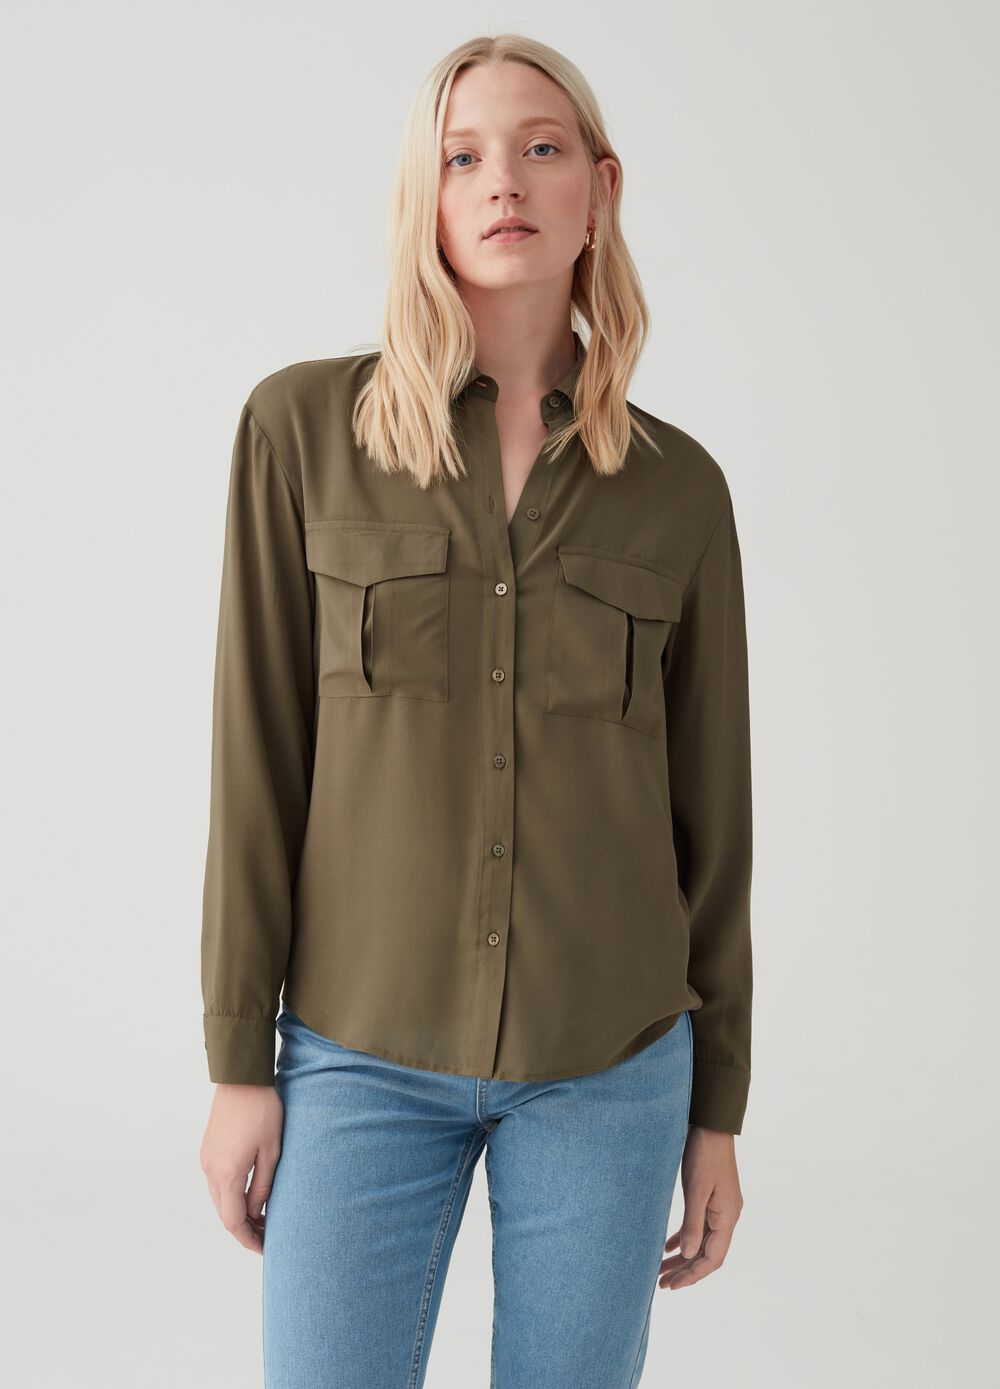 buy online eed69 5aad6 Camicie Casual Donna online - Nuova Collezione | OVS